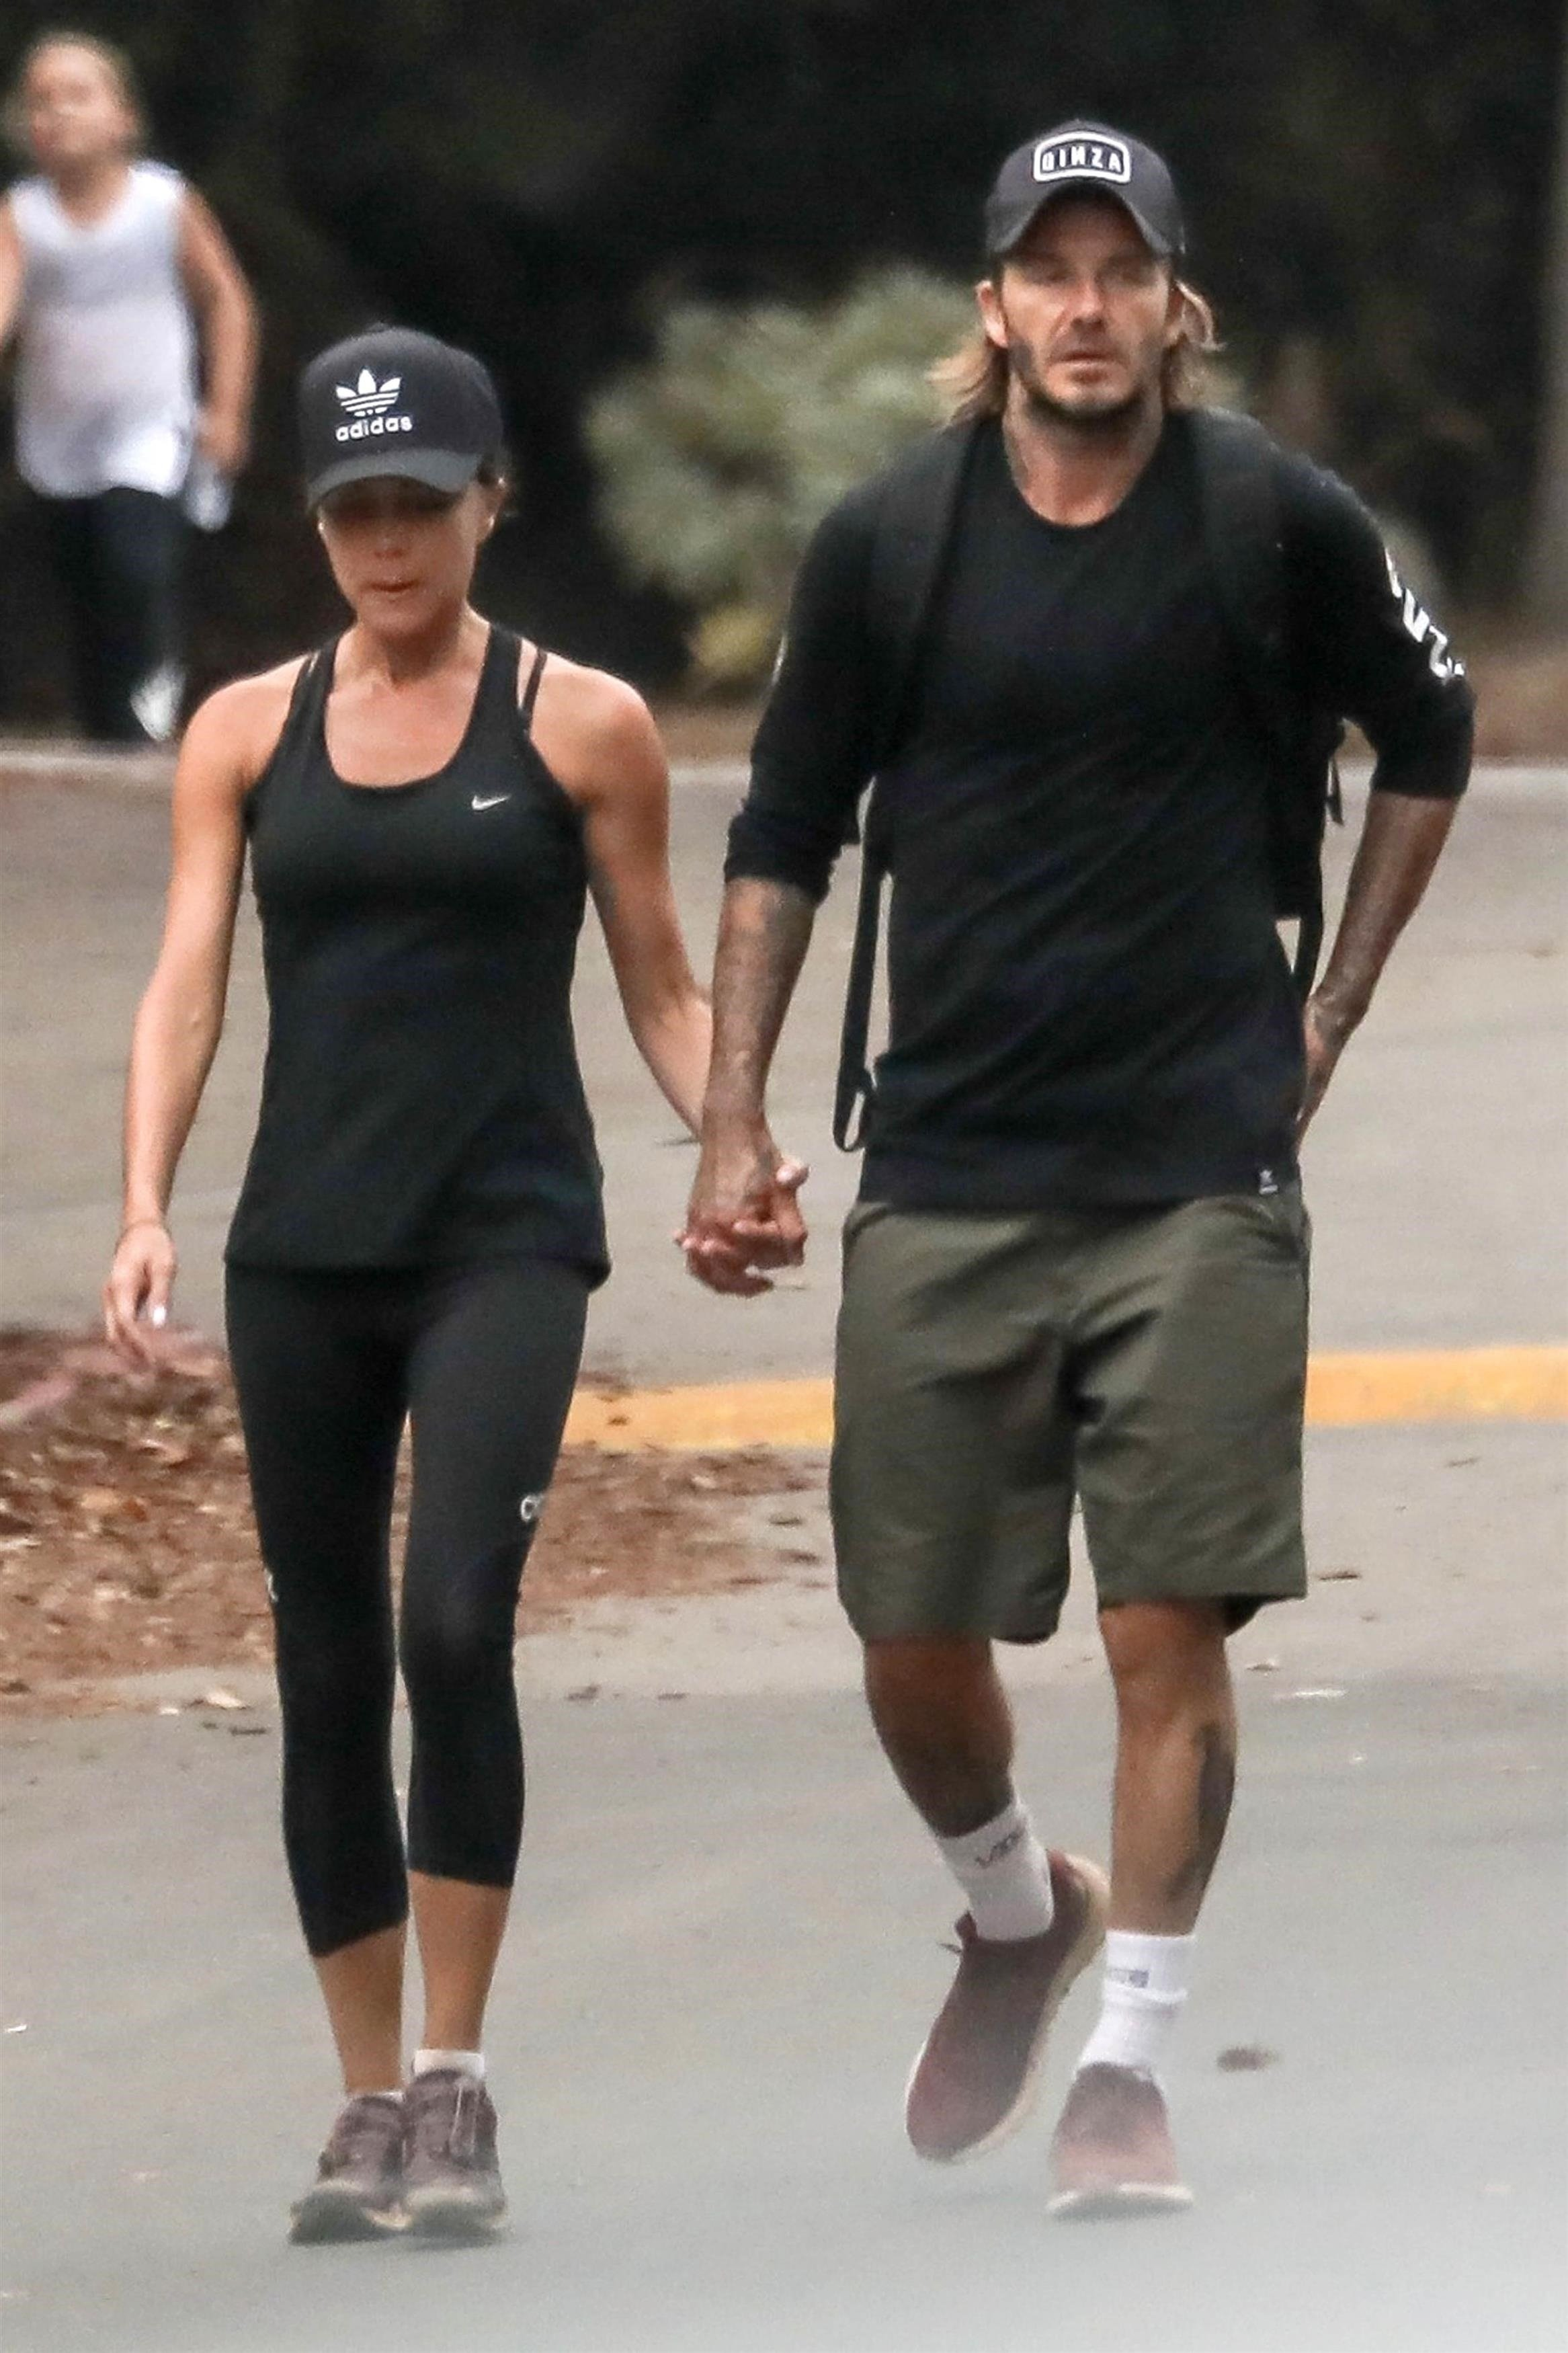 *EXCLUSIVE* Pacific Palisades, CA  - Superstar couple David and Victoria Beckham were seen holding hands after a hike with their kids Pacific Palisades. David recently returned from New York City where he saw his oldest son Brooklyn off to school! *WEB MUST CALL FOR PRICING*  Pictured: David Beckham, Victoria Beckham  BACKGRID USA 23 AUGUST 2017, Image: 346358385, License: Rights-managed, Restrictions: , Model Release: no, Credit line: Profimedia, AKM-GSI